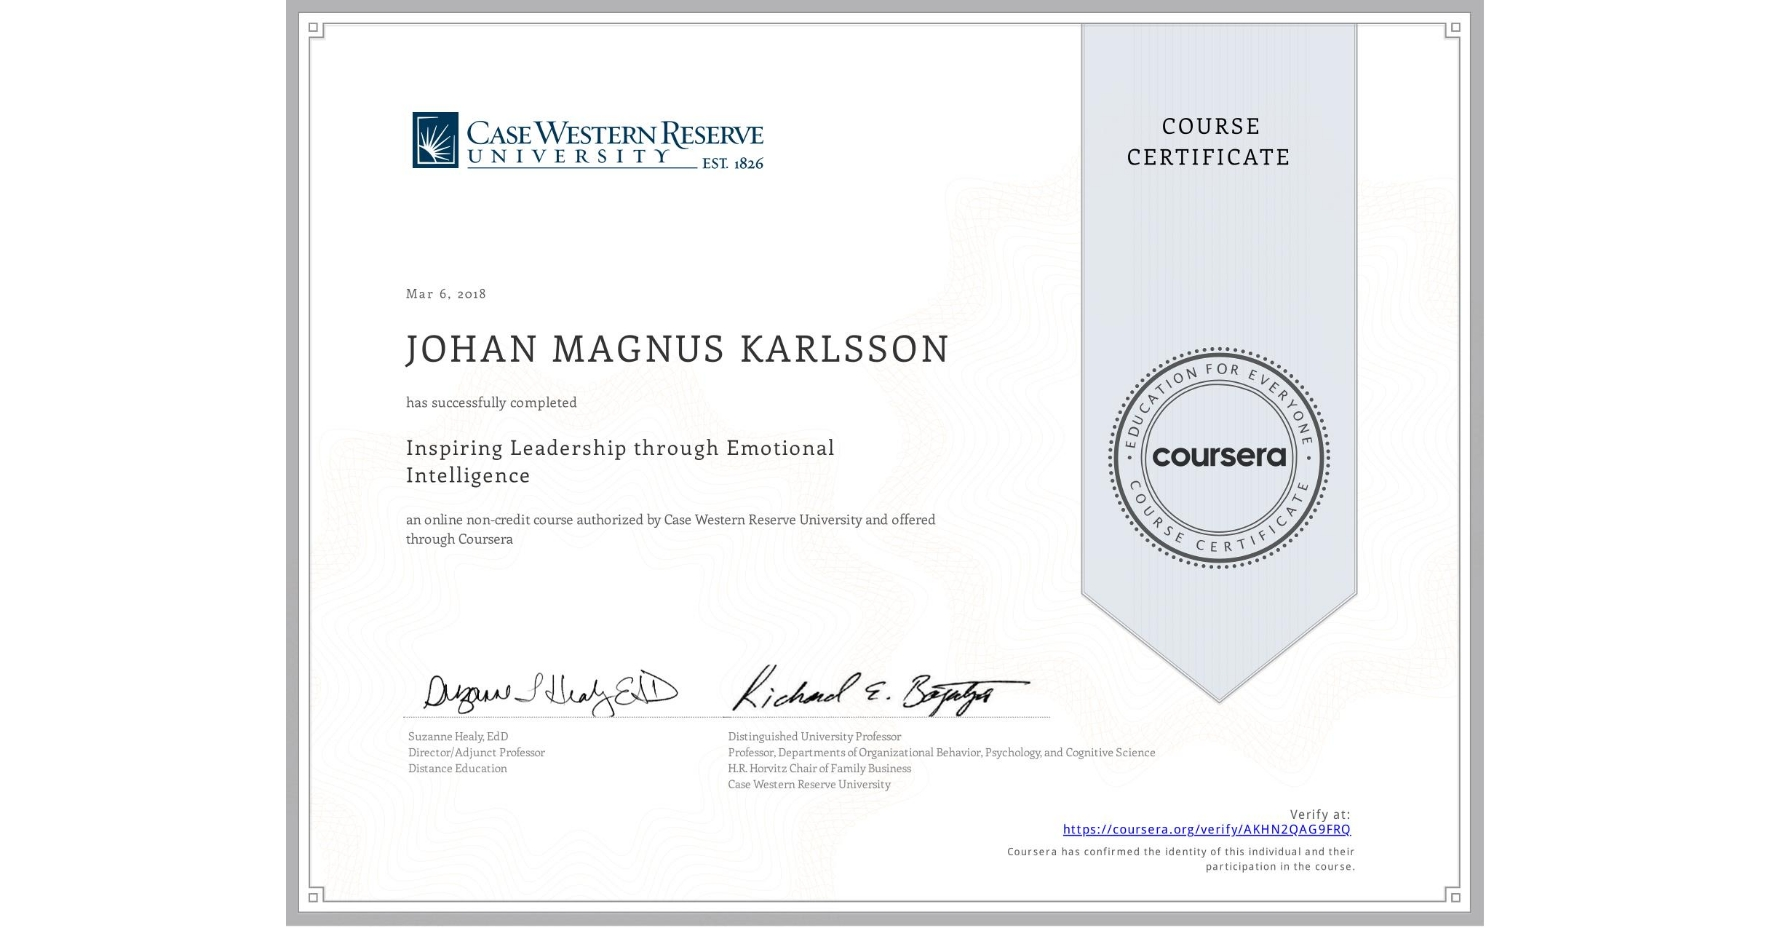 View certificate for JOHAN MAGNUS  KARLSSON, Inspiring Leadership through Emotional Intelligence, an online non-credit course authorized by Case Western Reserve University and offered through Coursera